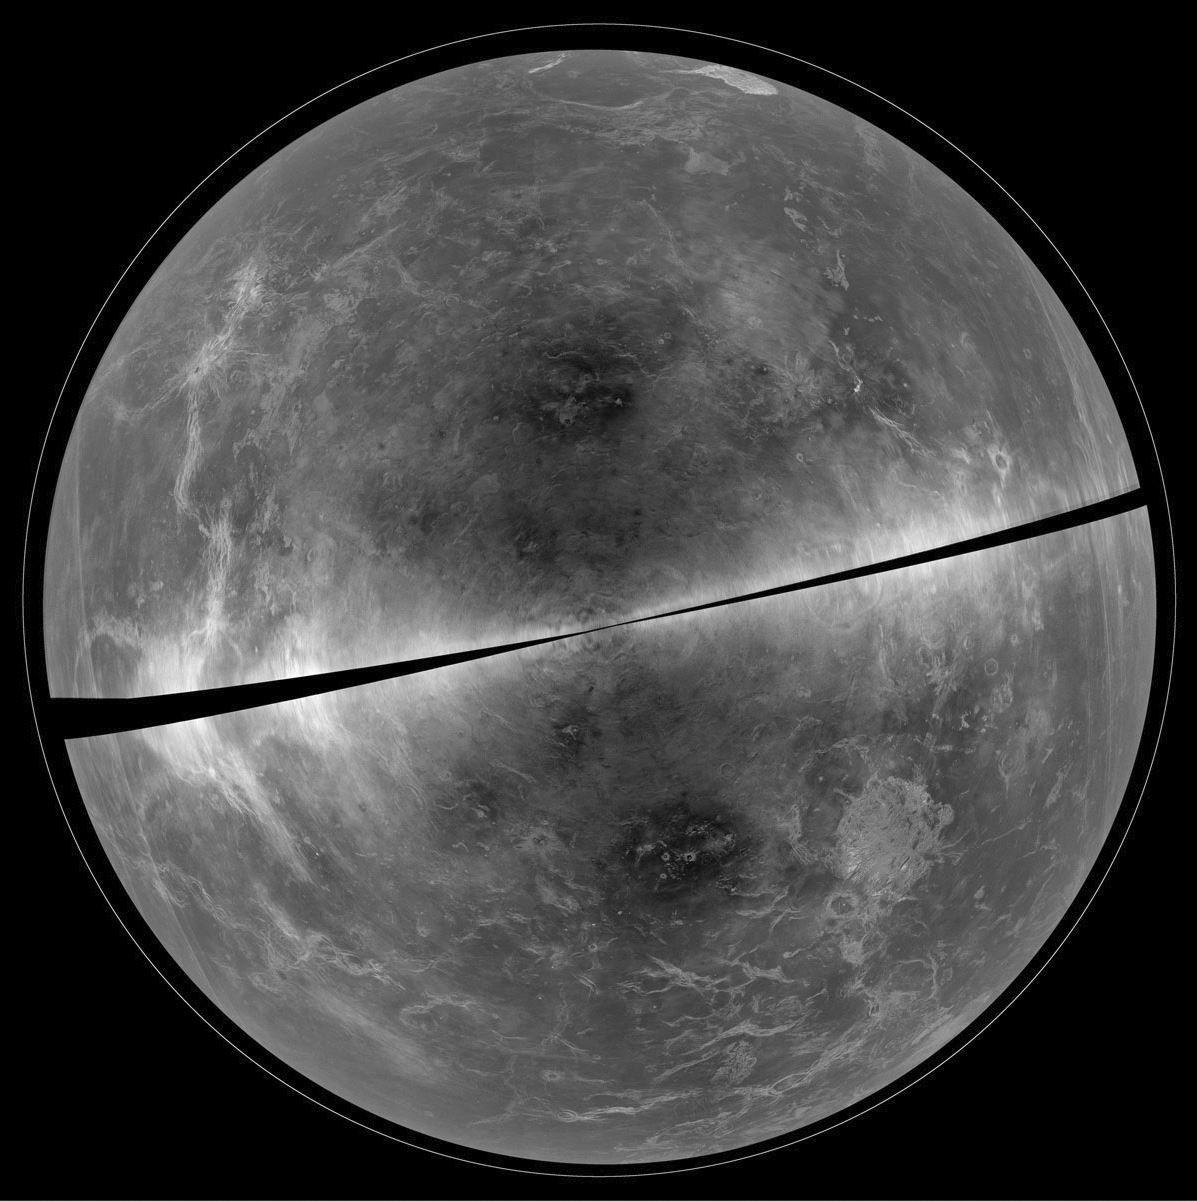 This Is What Venus Looks Like Under Its Clouds